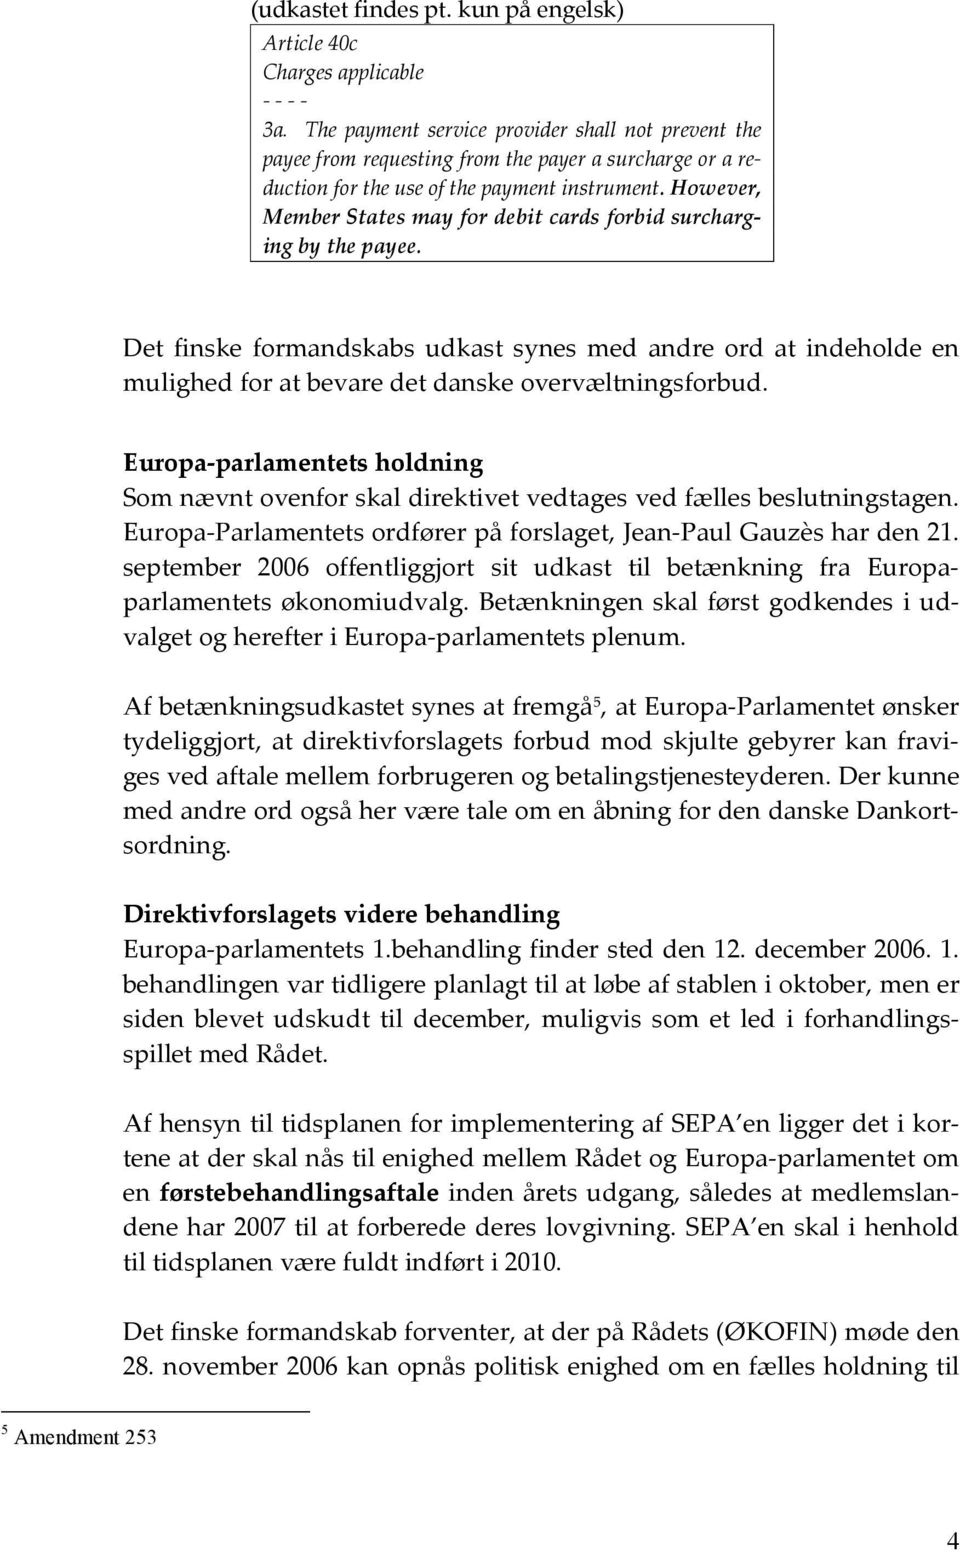 However, Member States may for debit cards forbid surcharging by the payee. Det finske formandskabs udkast synes med andre ord at indeholde en mulighed for at bevare det danske overvæltningsforbud.